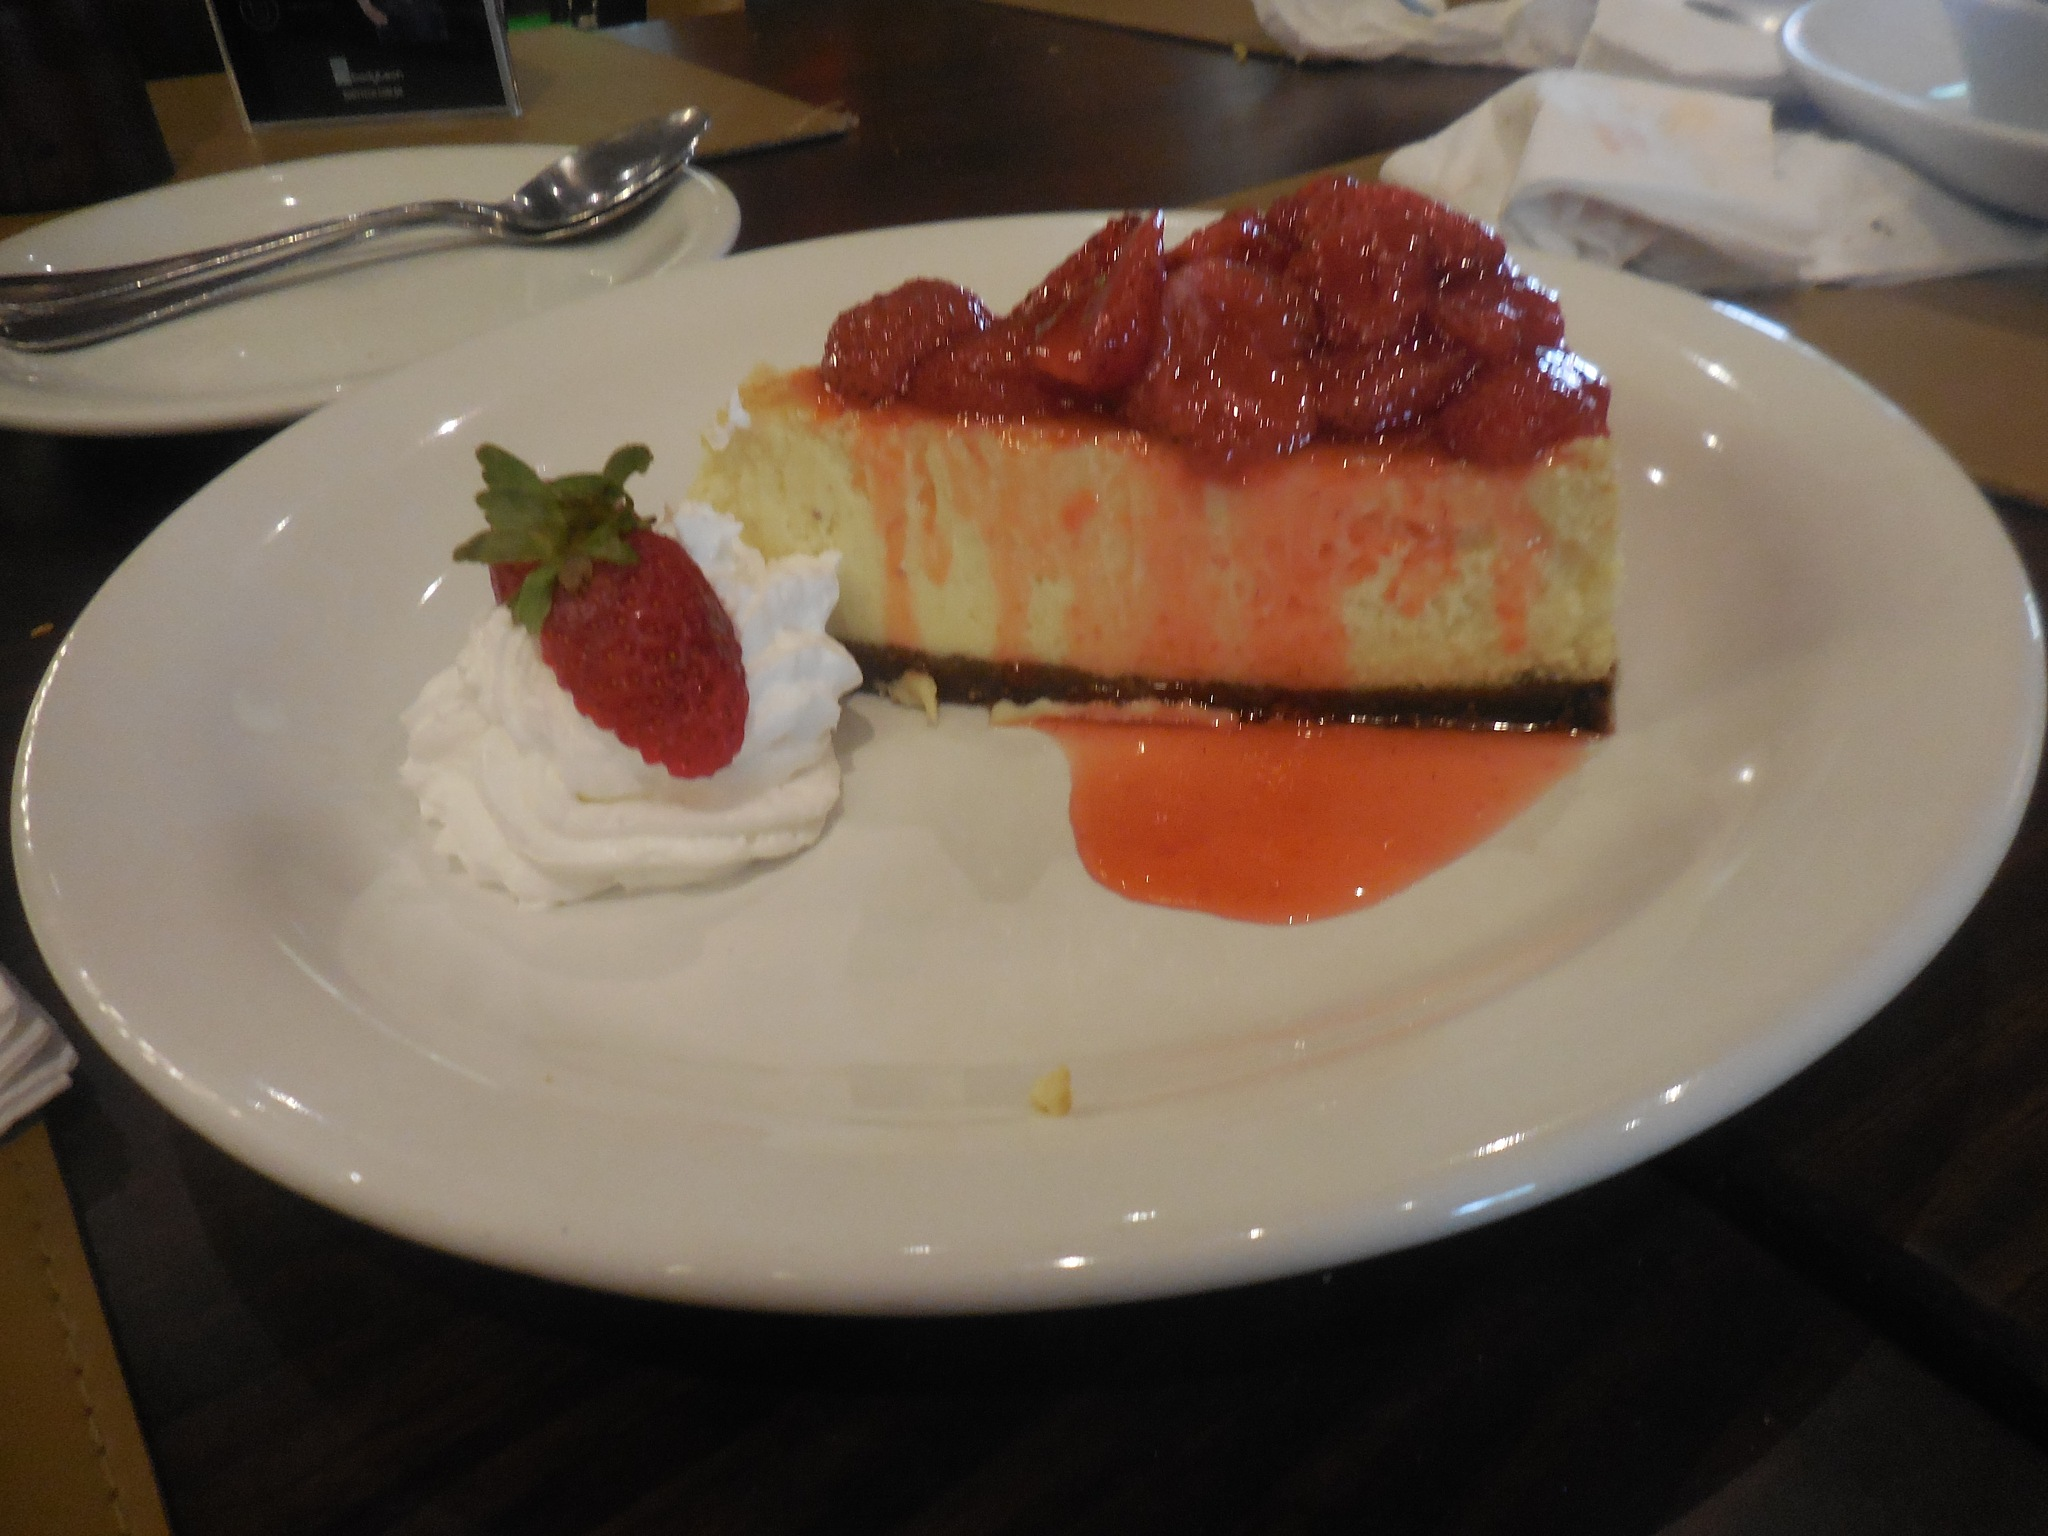 Cheese cake by linacb01